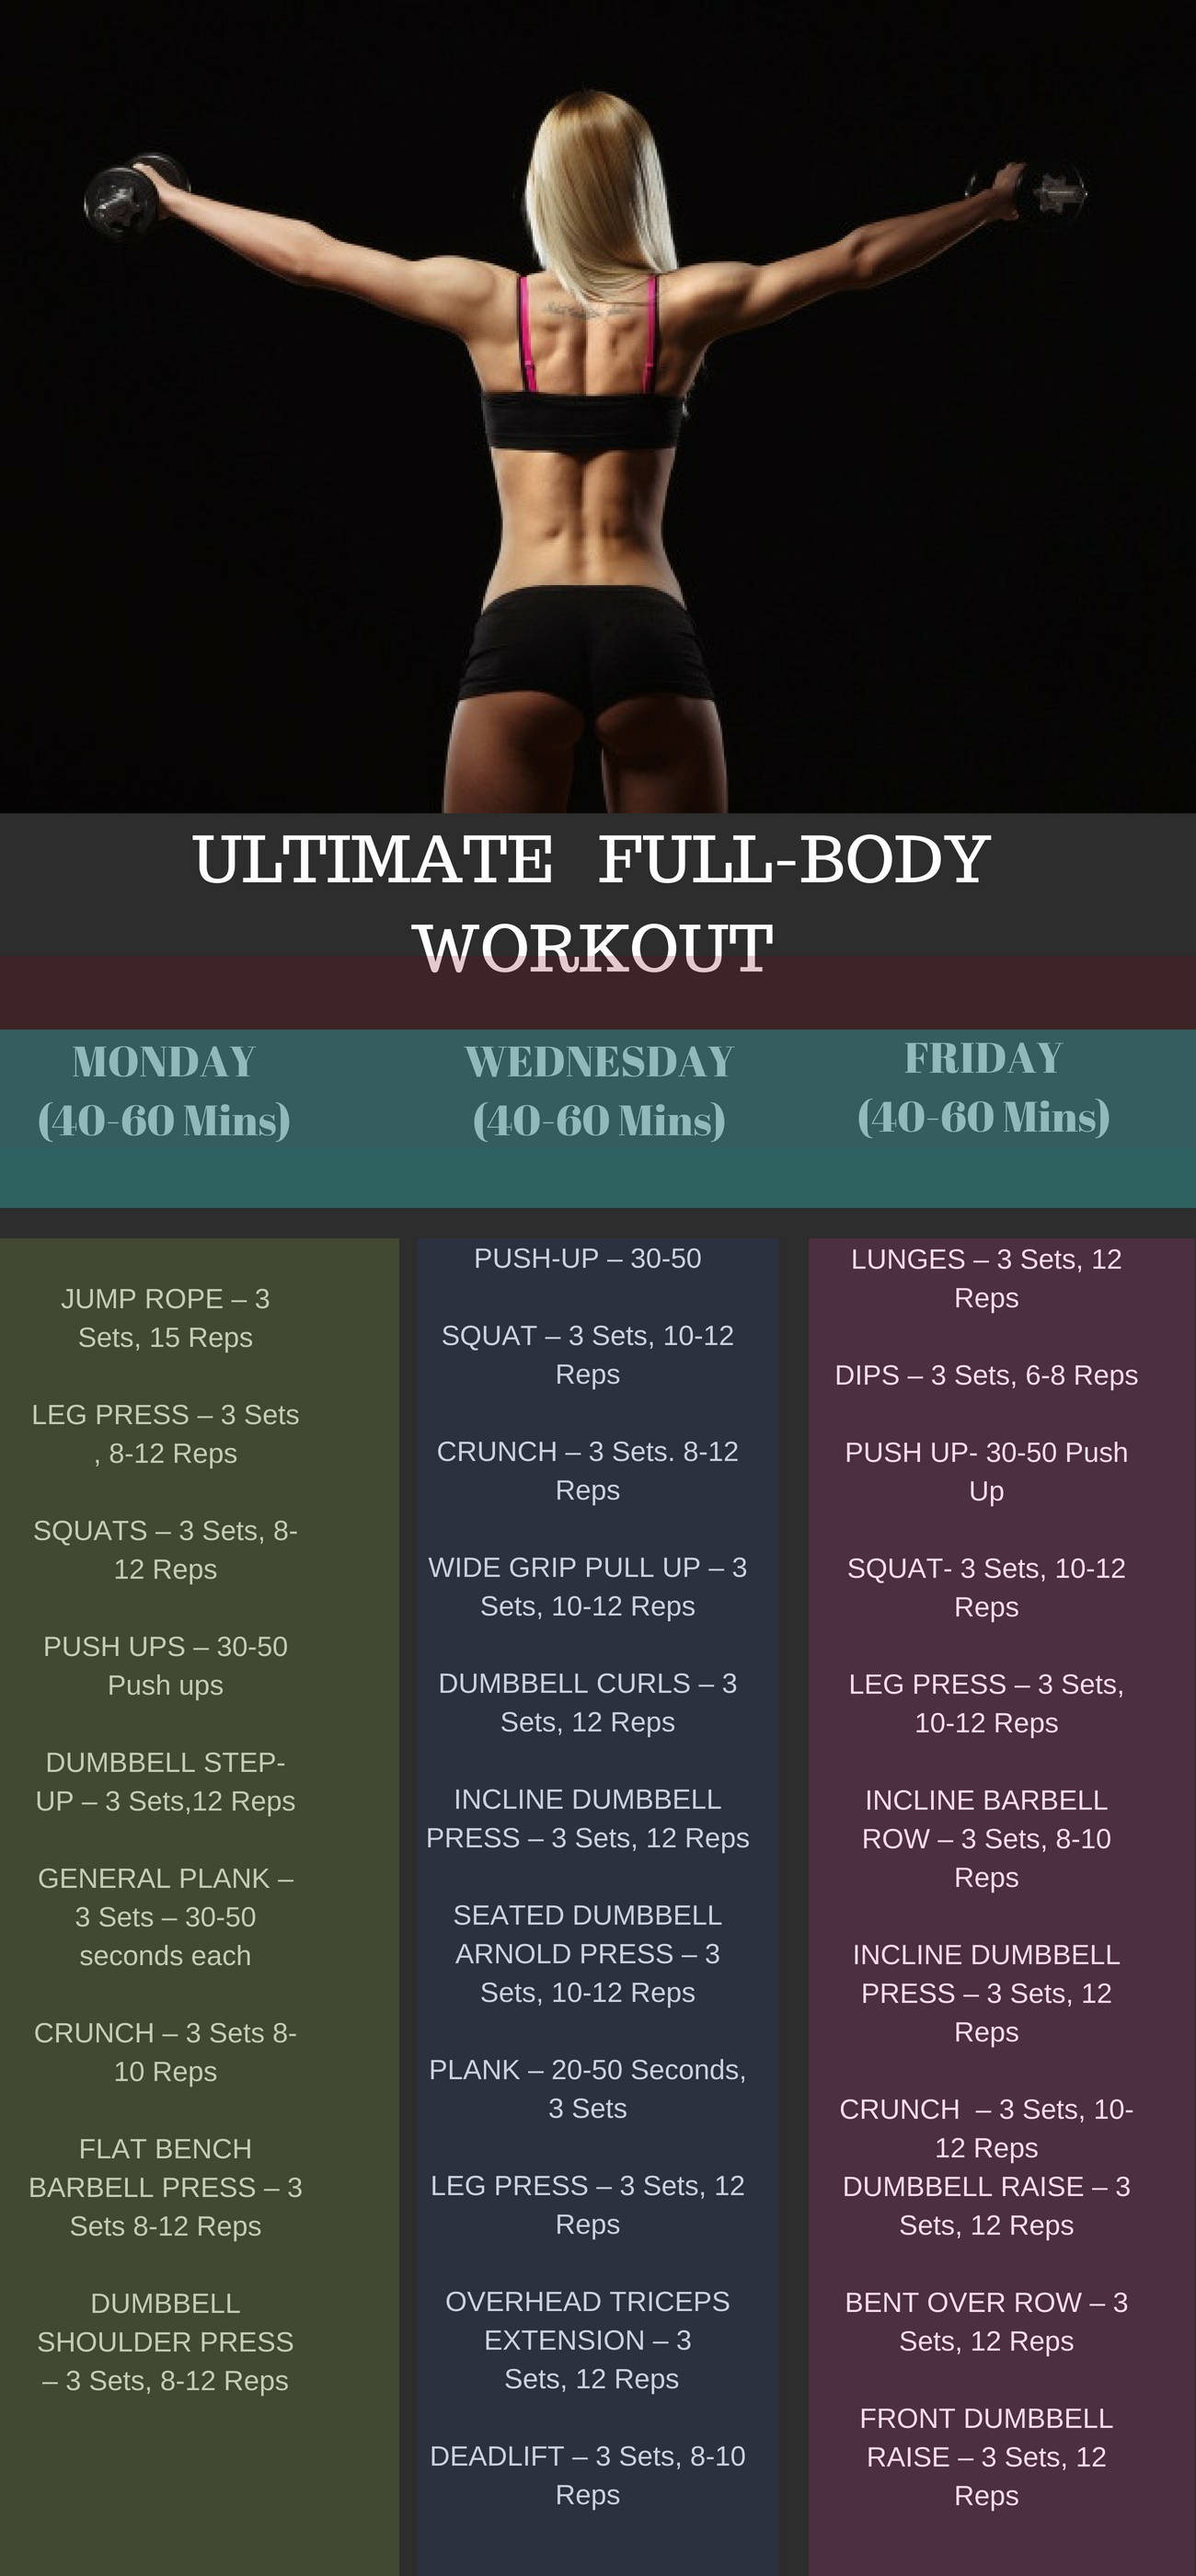 Ultimate Full-Body Workout - Best Full-Body Workout Plan - The Hust